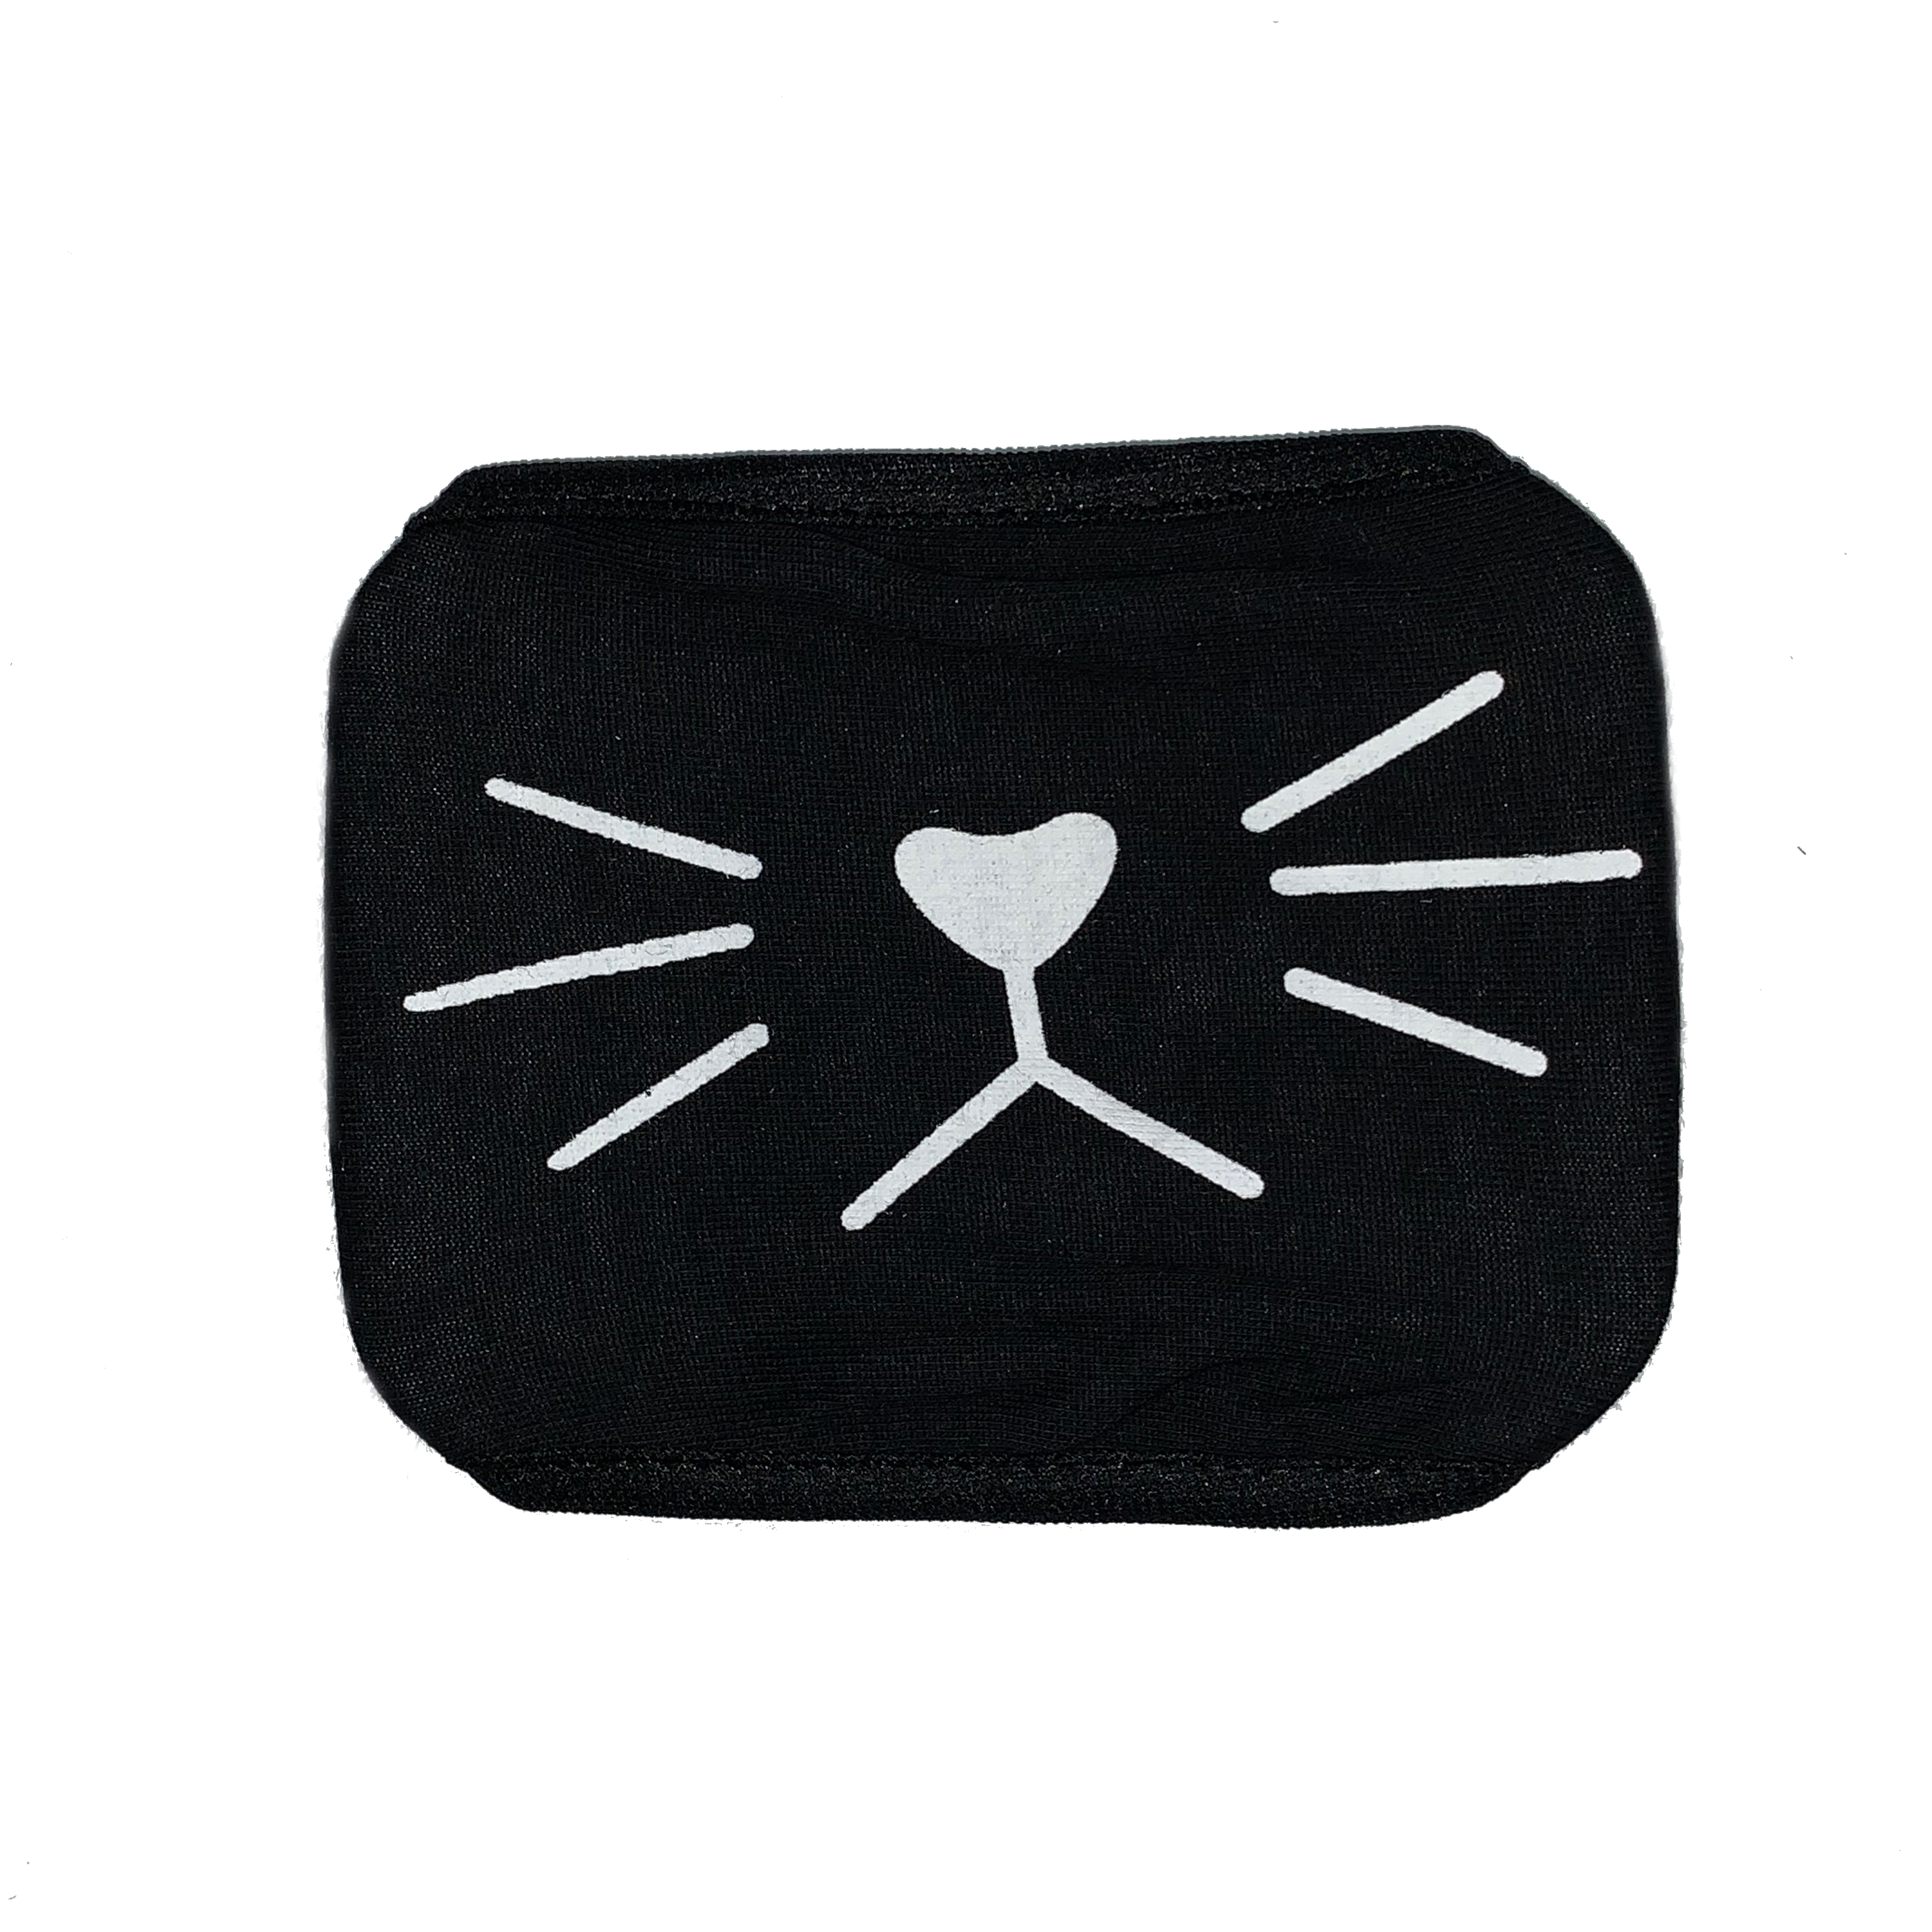 Cosplay Mask Face Mouth Mask Anime Cat Smile Black One Size Fits Most